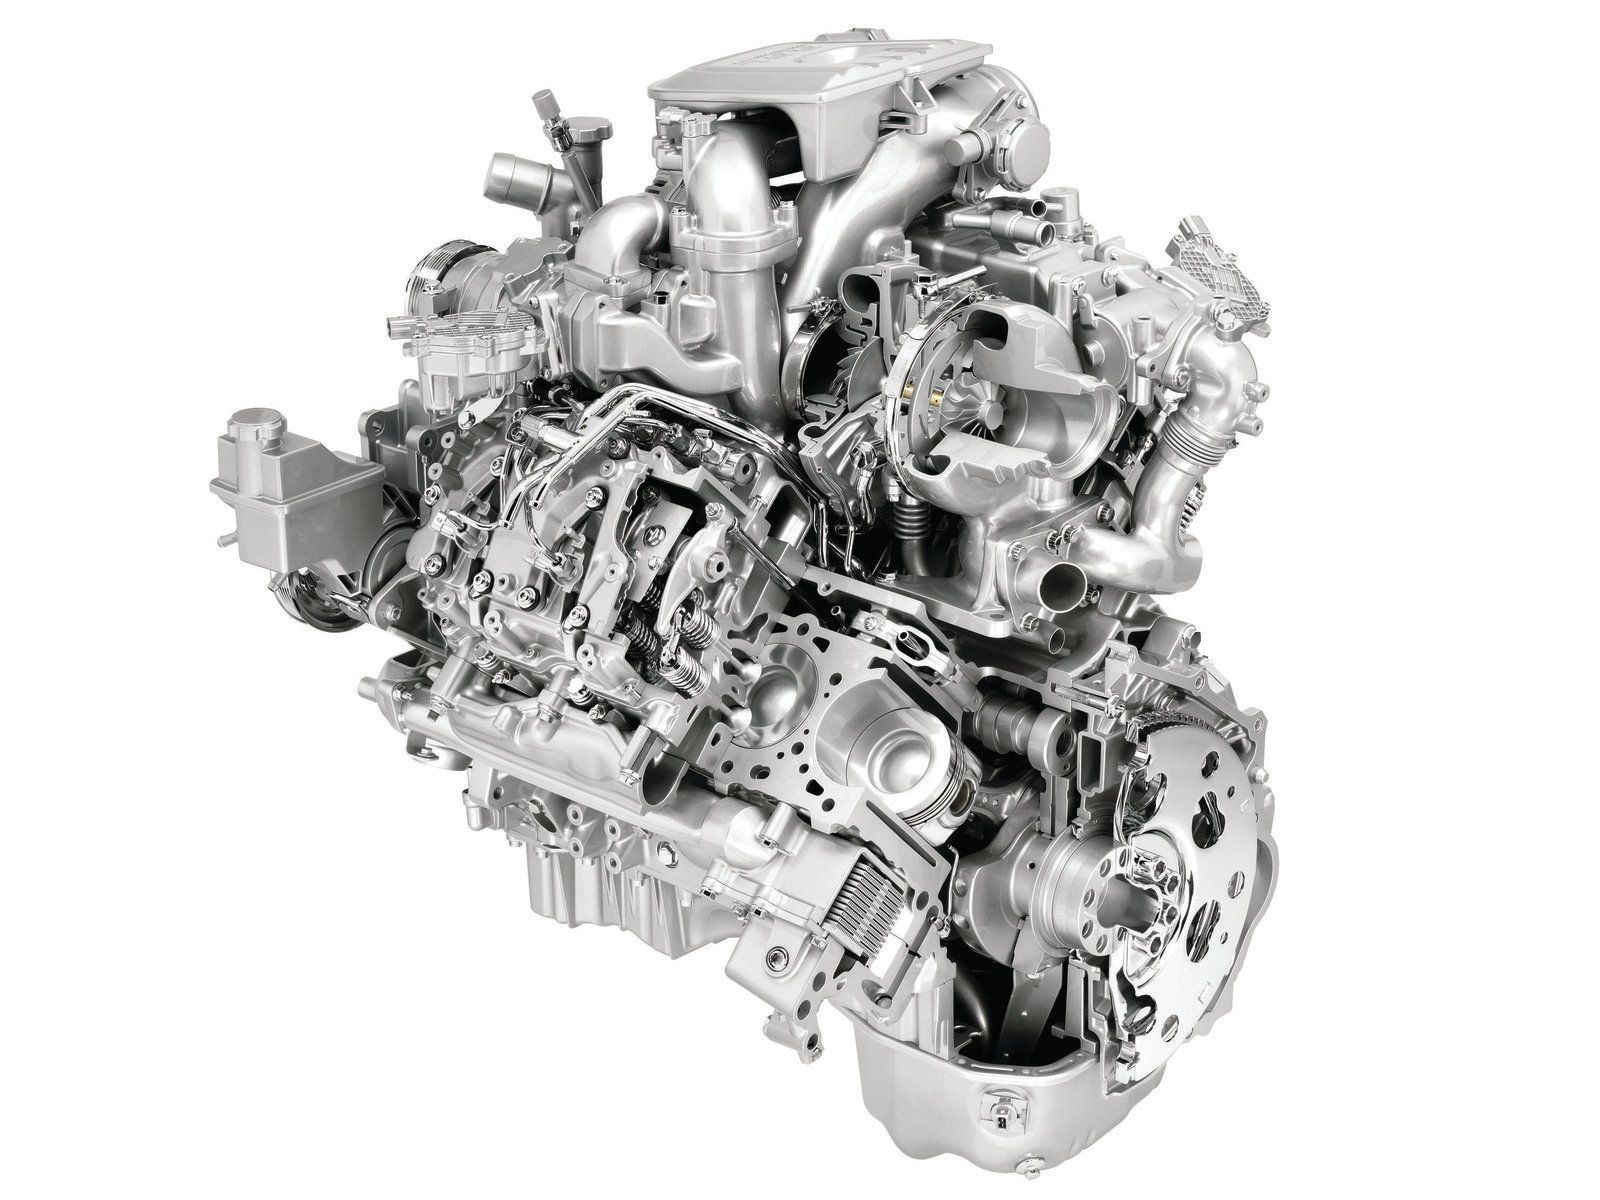 Duramax Engine Diagram History Of the Duramax Diesel Engine Diesel Power  Magazine Of Duramax Engine Diagram